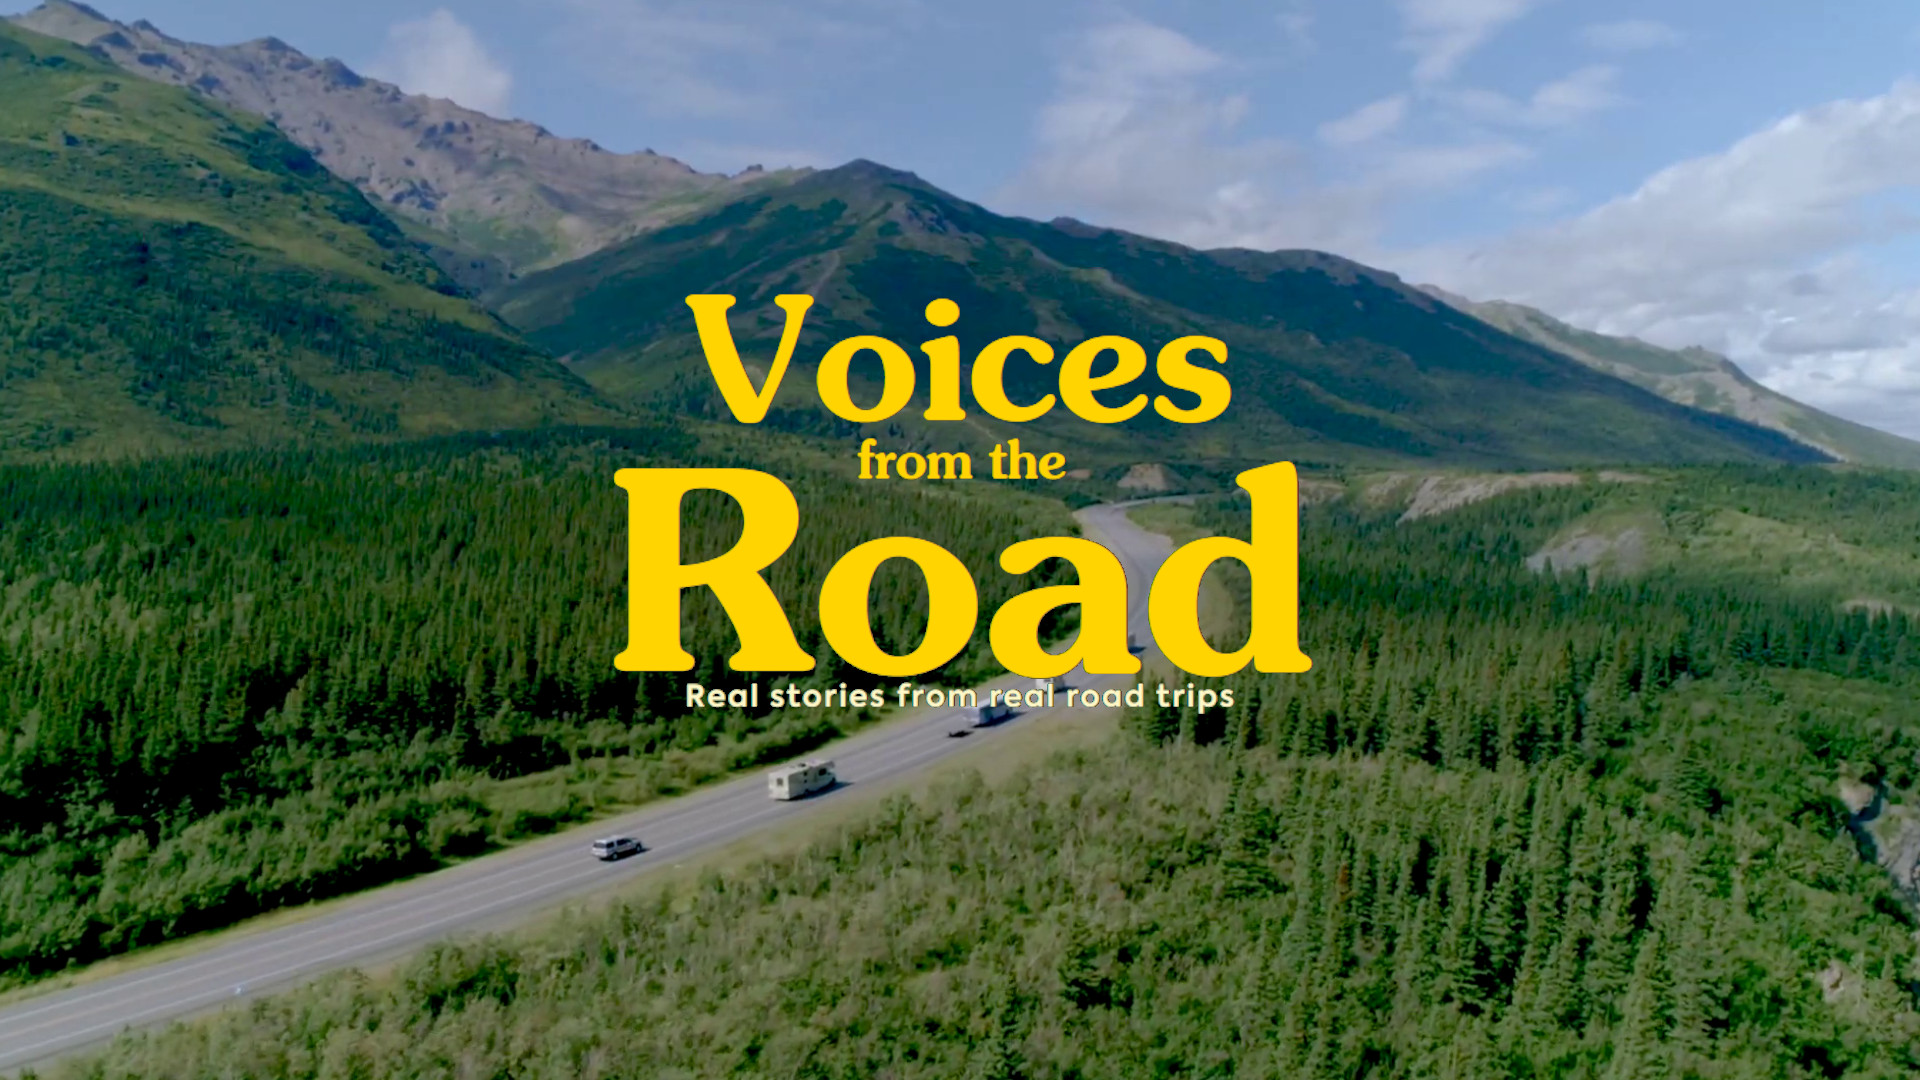 Voices from The Road Campaign, Roadtrippers